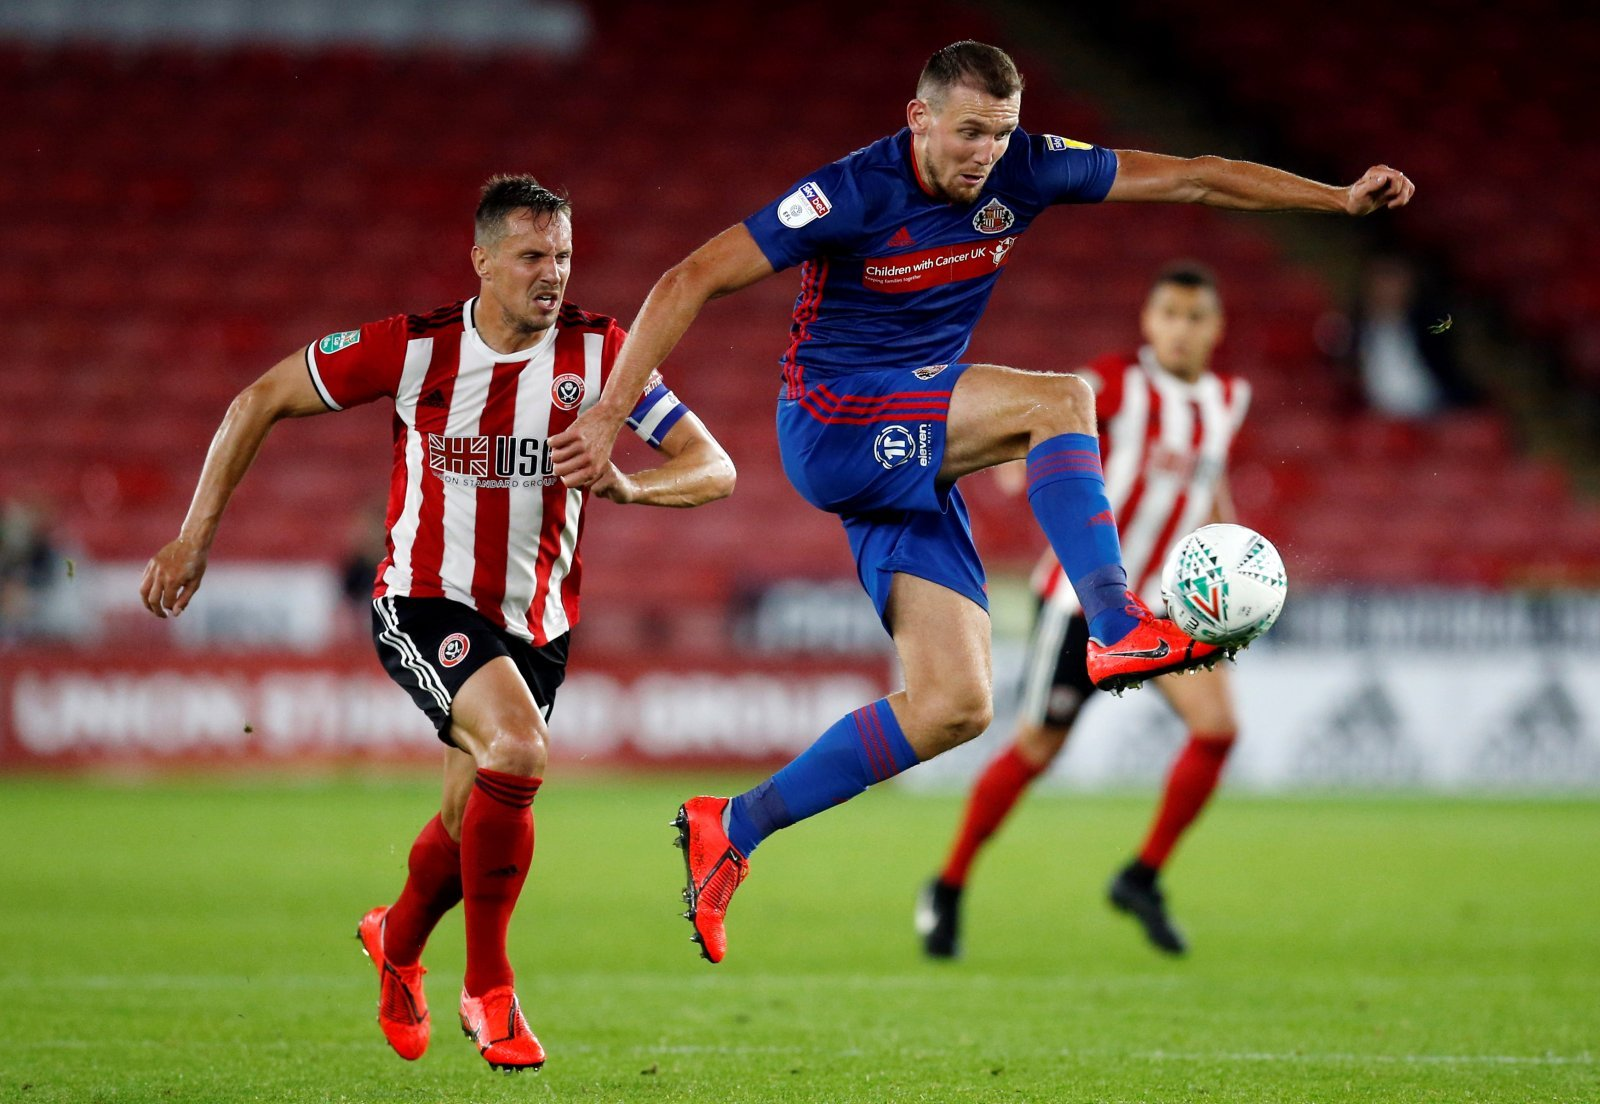 Sunderland: Many fans have indicated that they won't miss Charlie Wyke